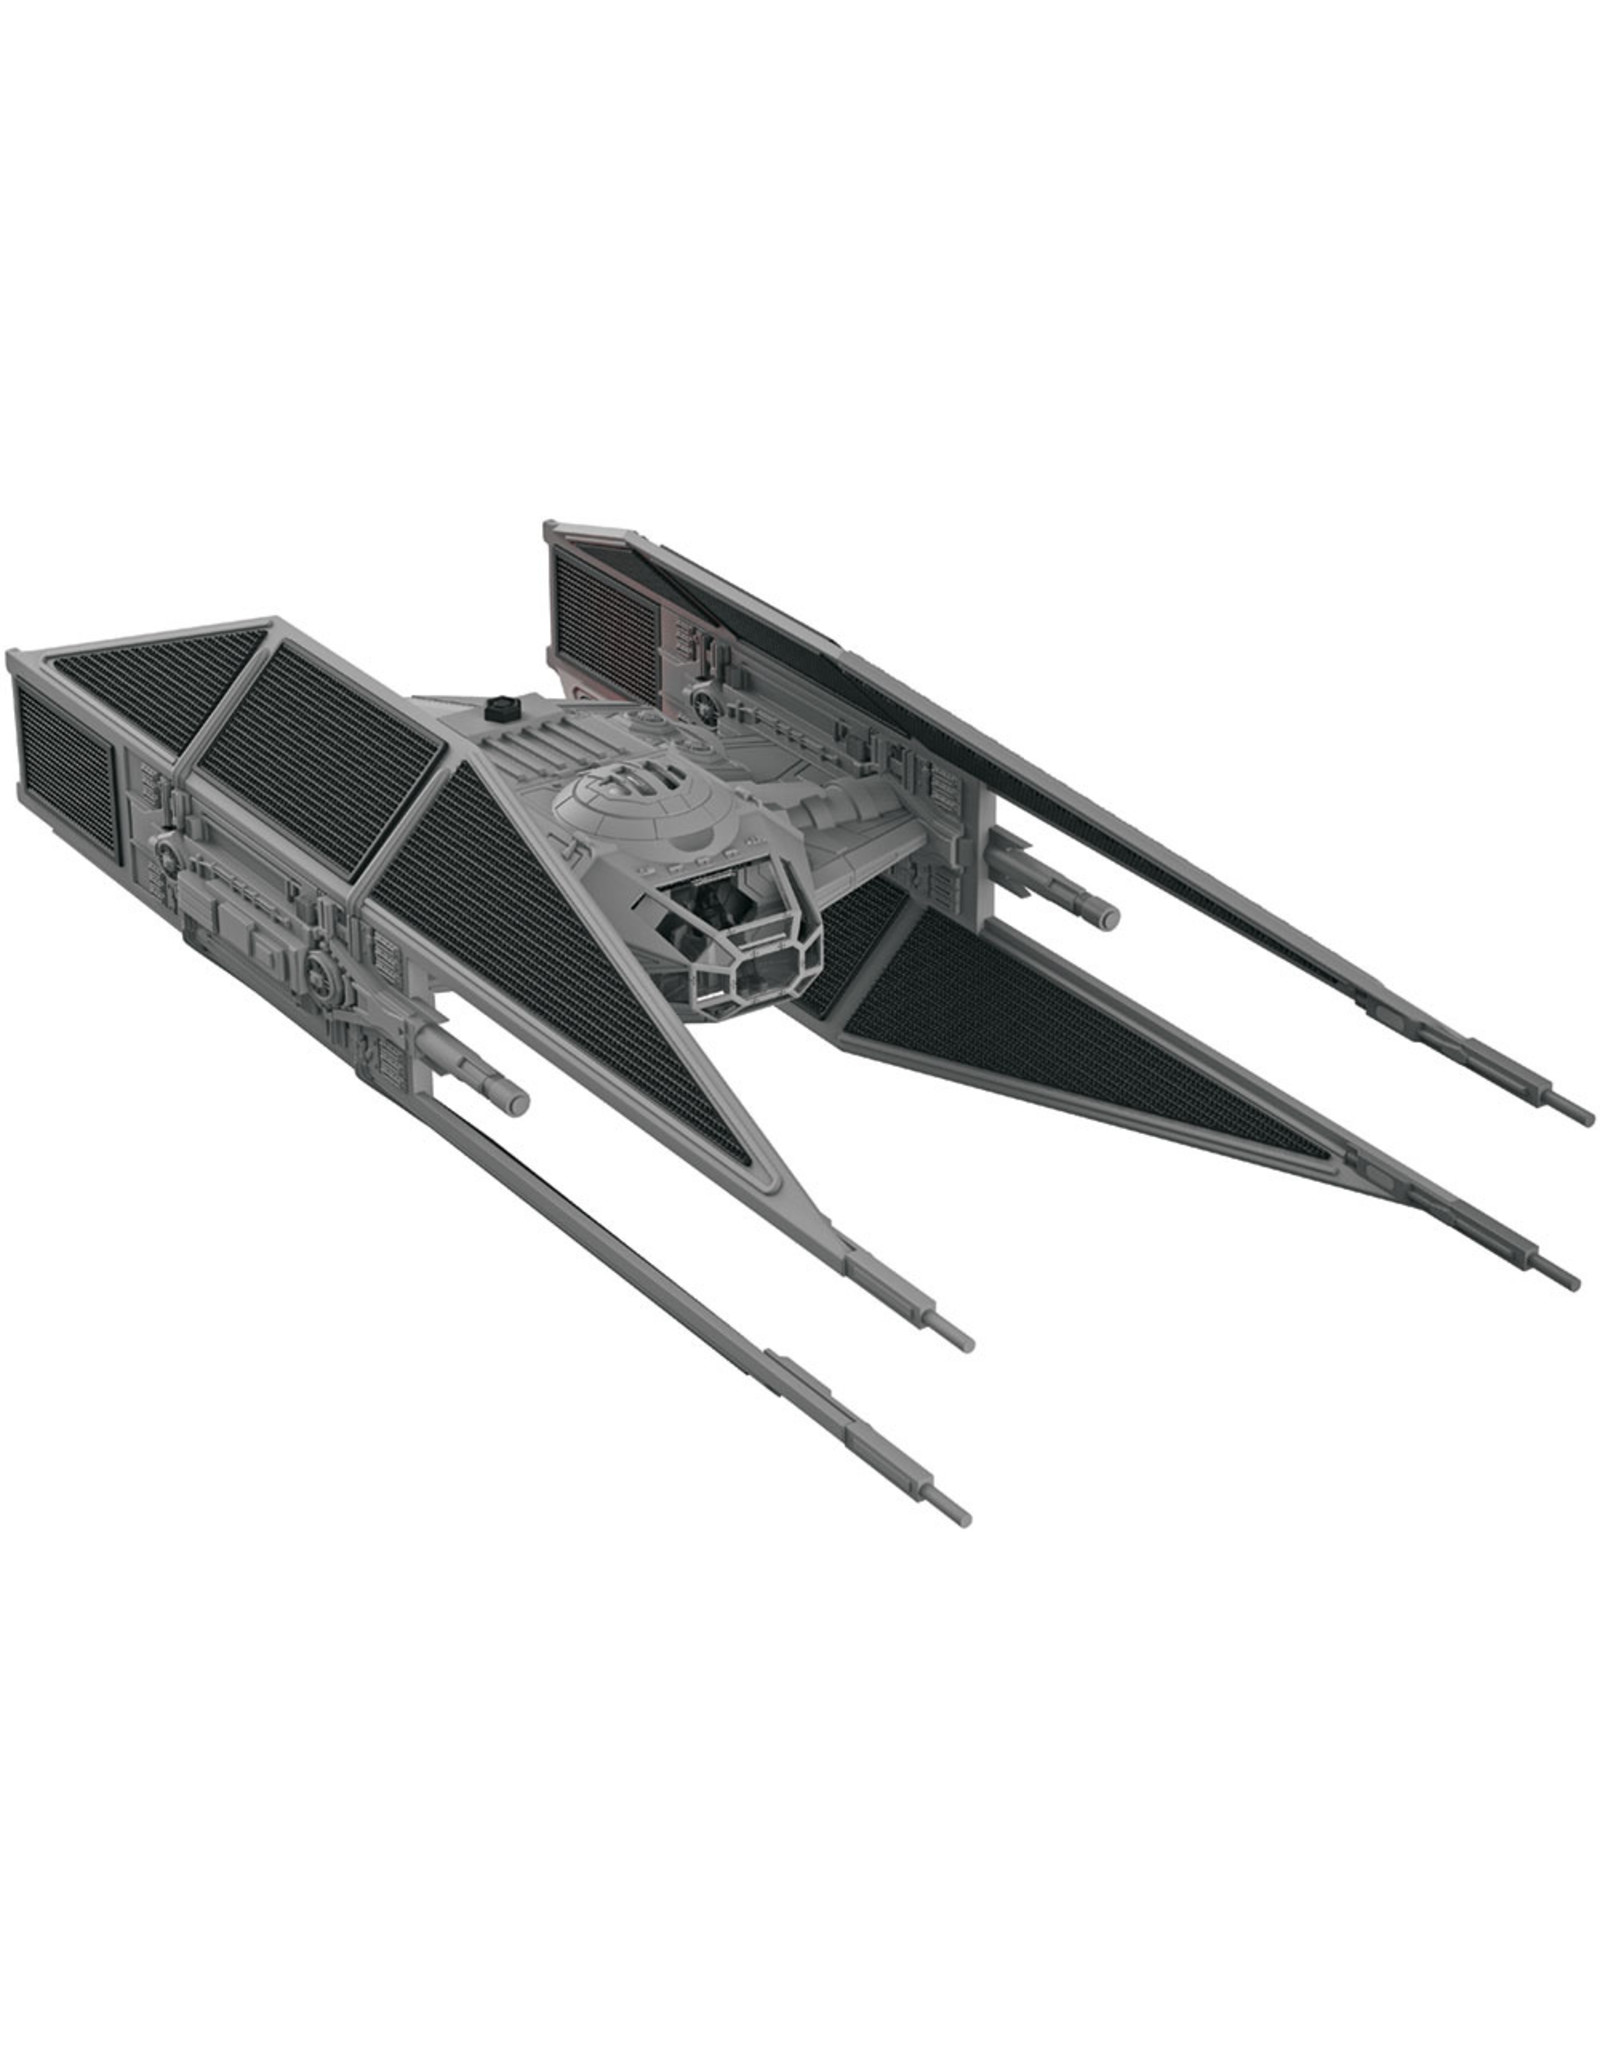 Revell 1647 - Kylo Ren's TIE Fighter 1/70 Scale